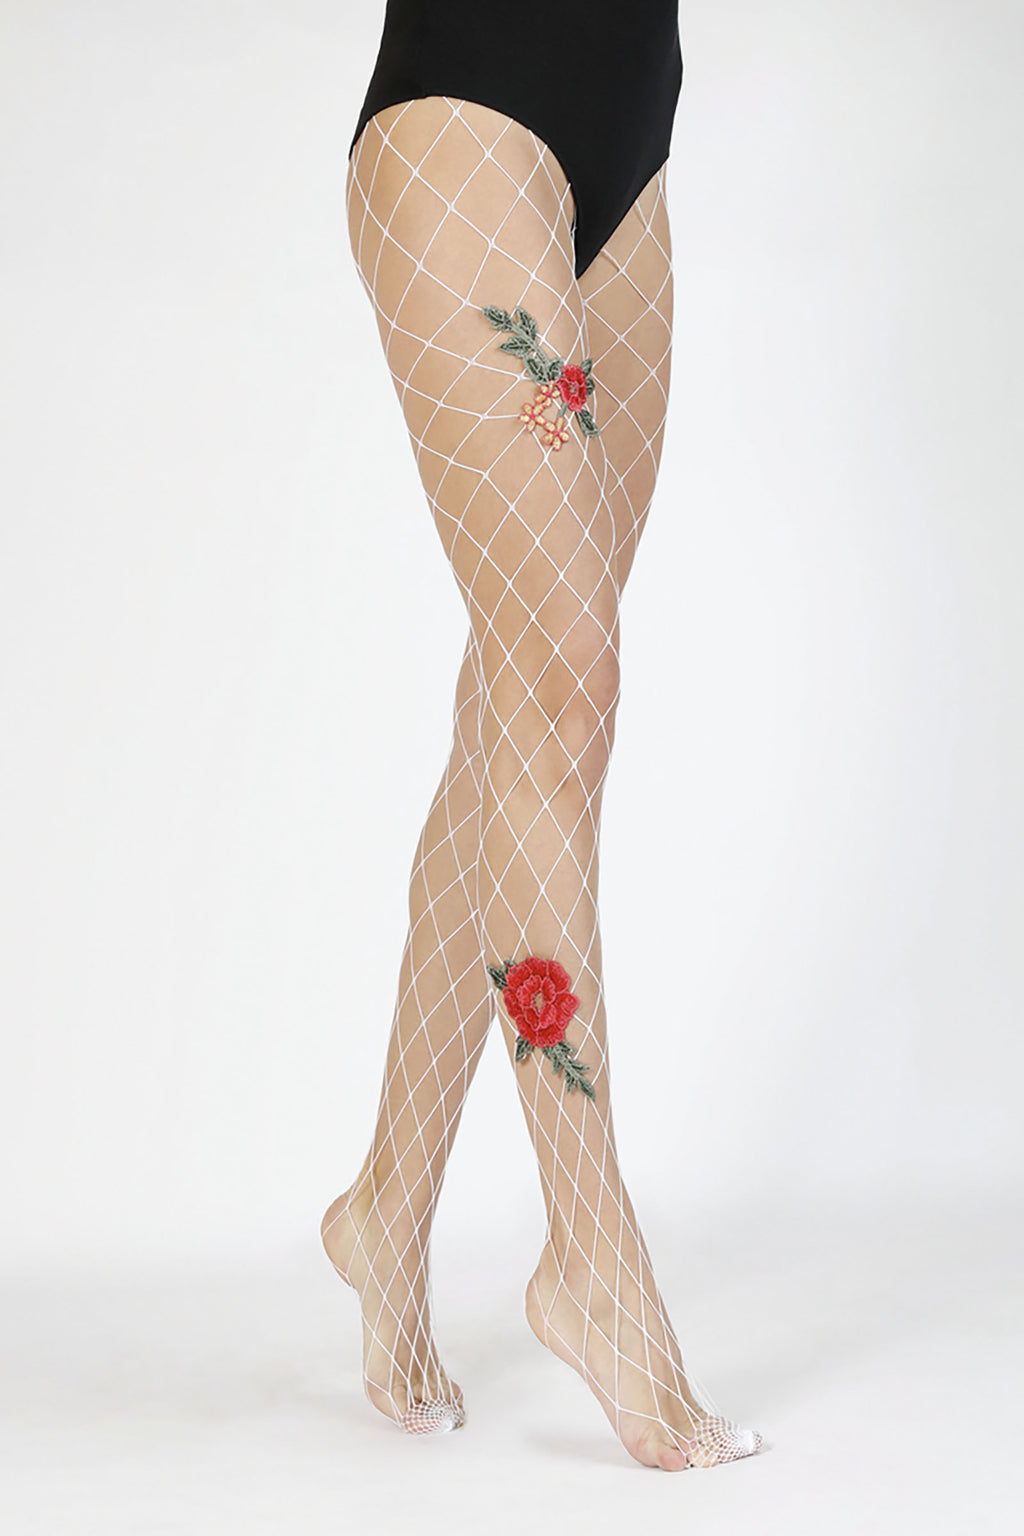 Rose Applique White Fishnet Tights